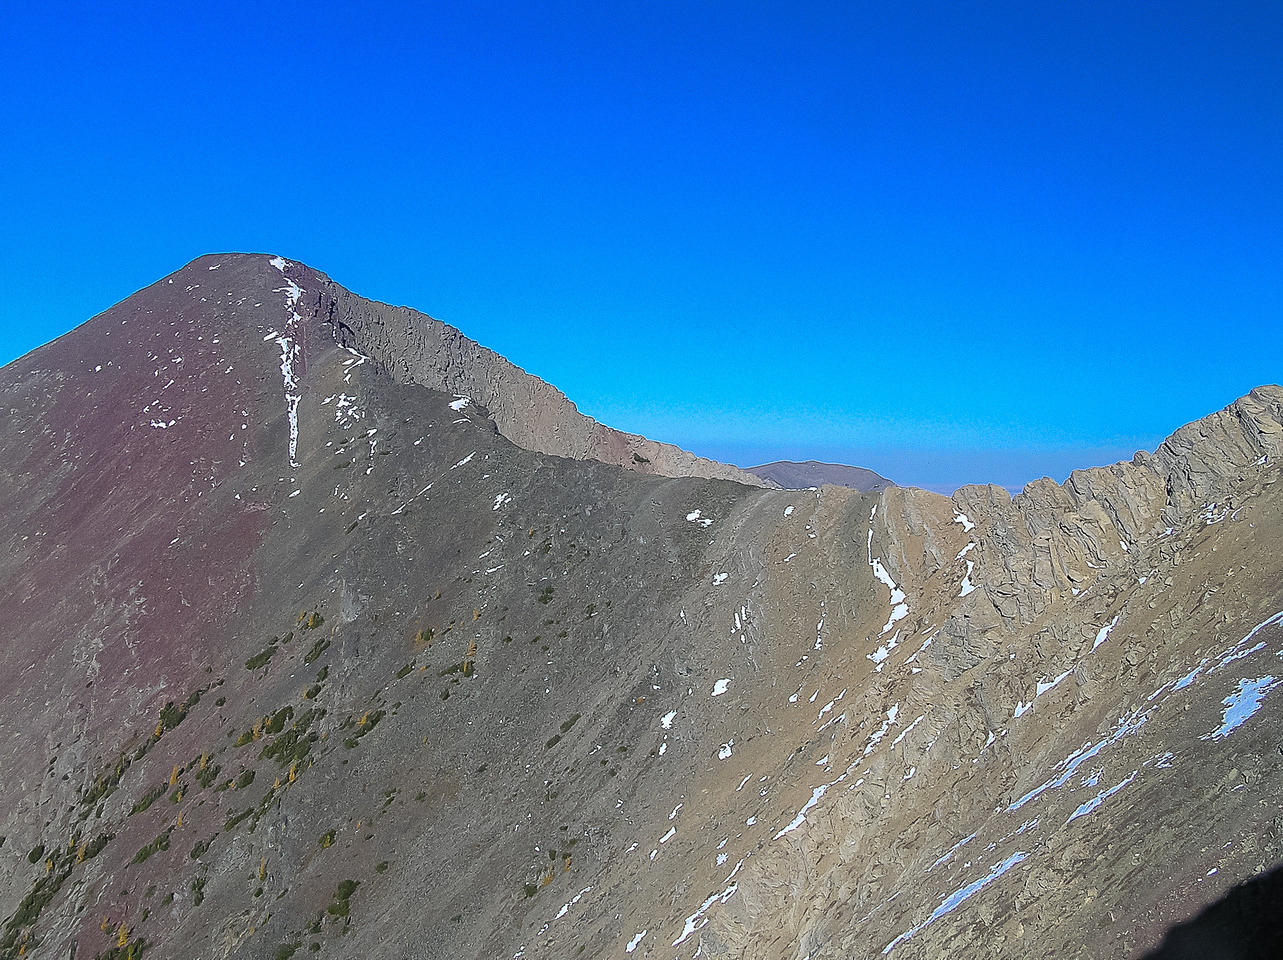 Buchanan Ridge is seen in the upper left and the traverse to the cliff bands goes to the right.